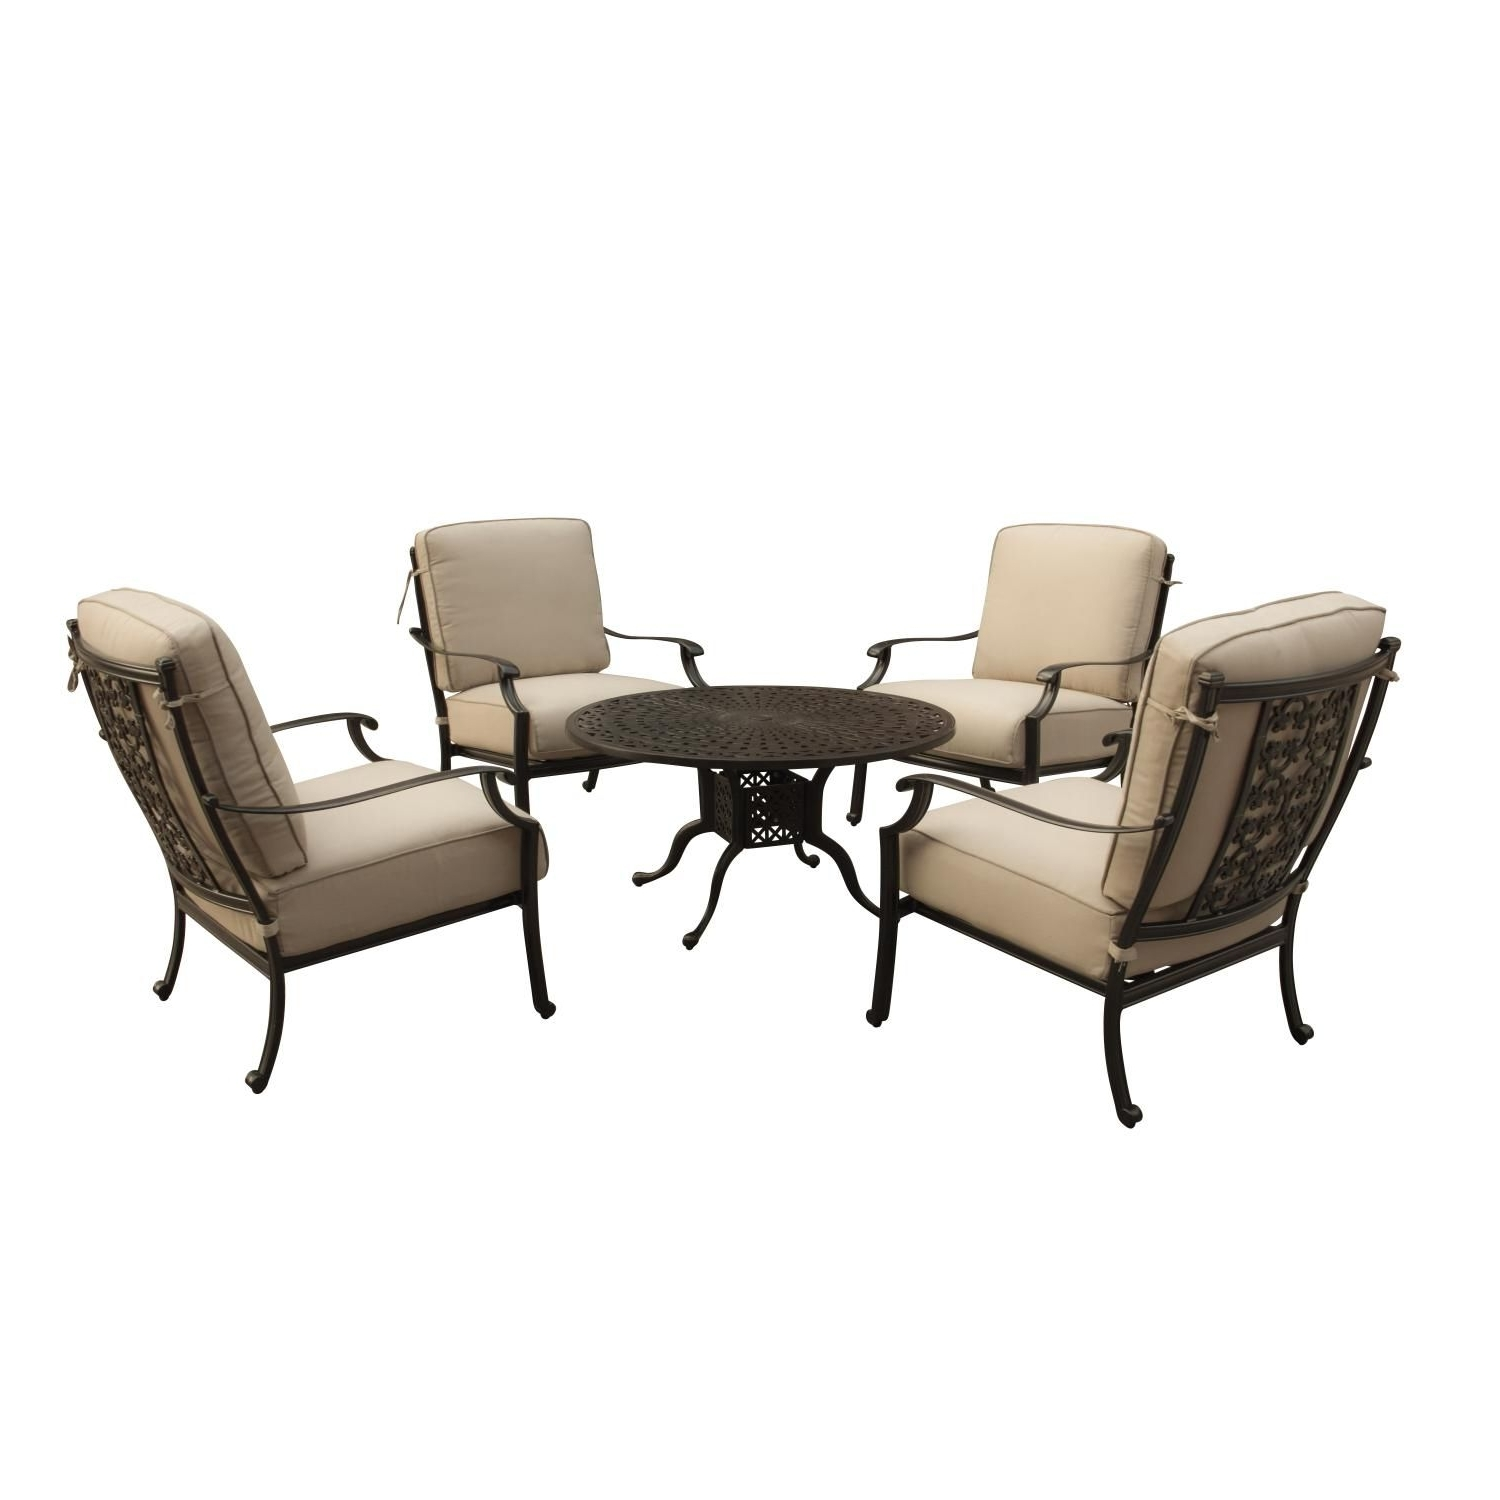 Patio Conversation Sets With Sunbrella Cushions Inside Well Known Carondelet 5 Piece Cast Aluminum Patio Conversation Set W/ Sunbrella (View 19 of 20)